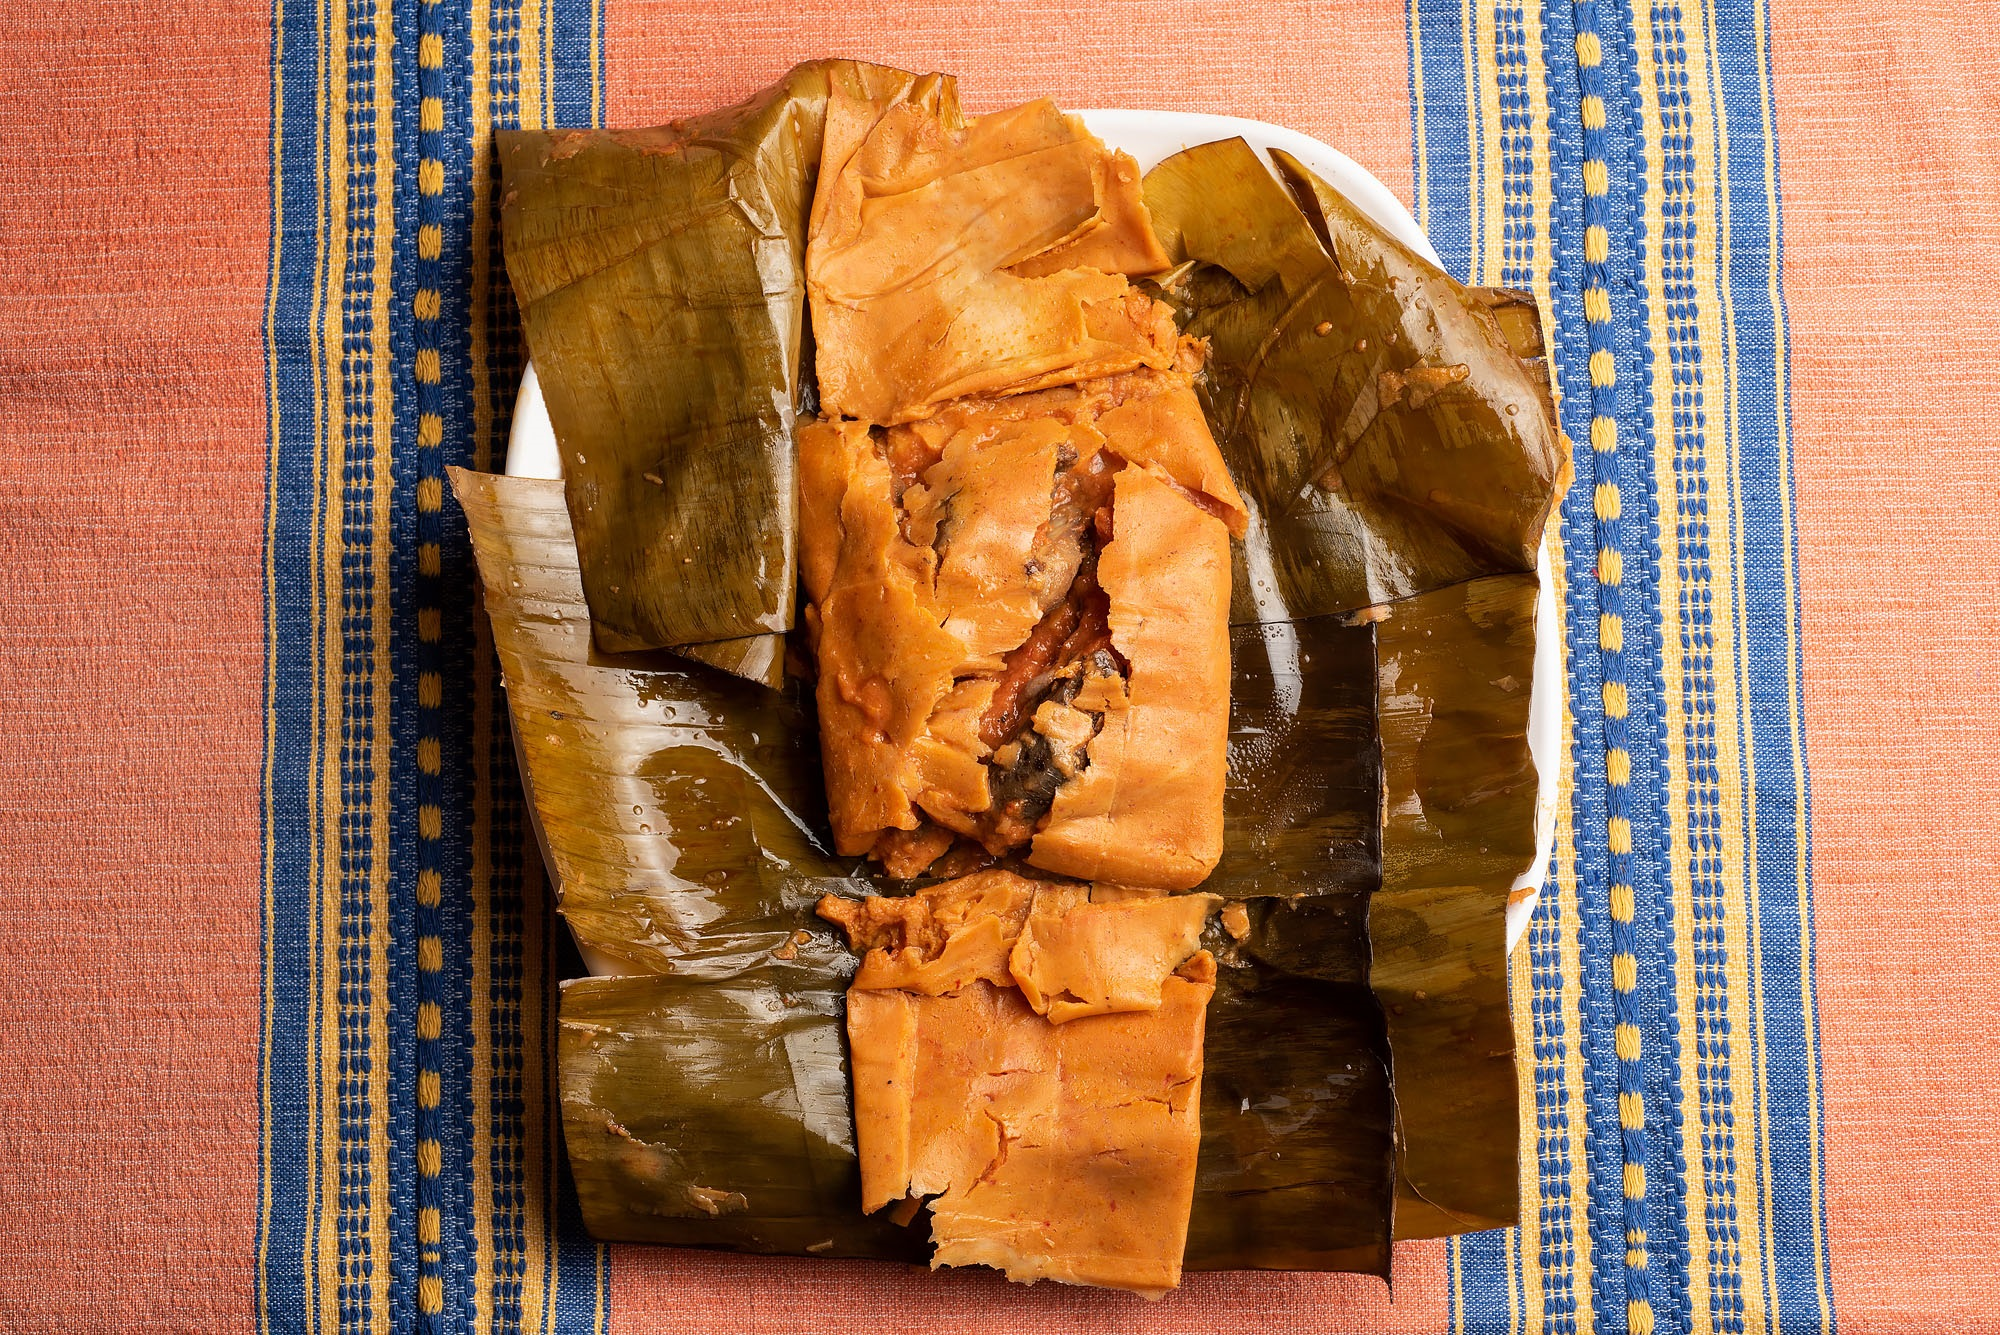 Importing Mexican Iguana Is Illegal, But This LA Restaurant Serves the Oaxacan Delicacy